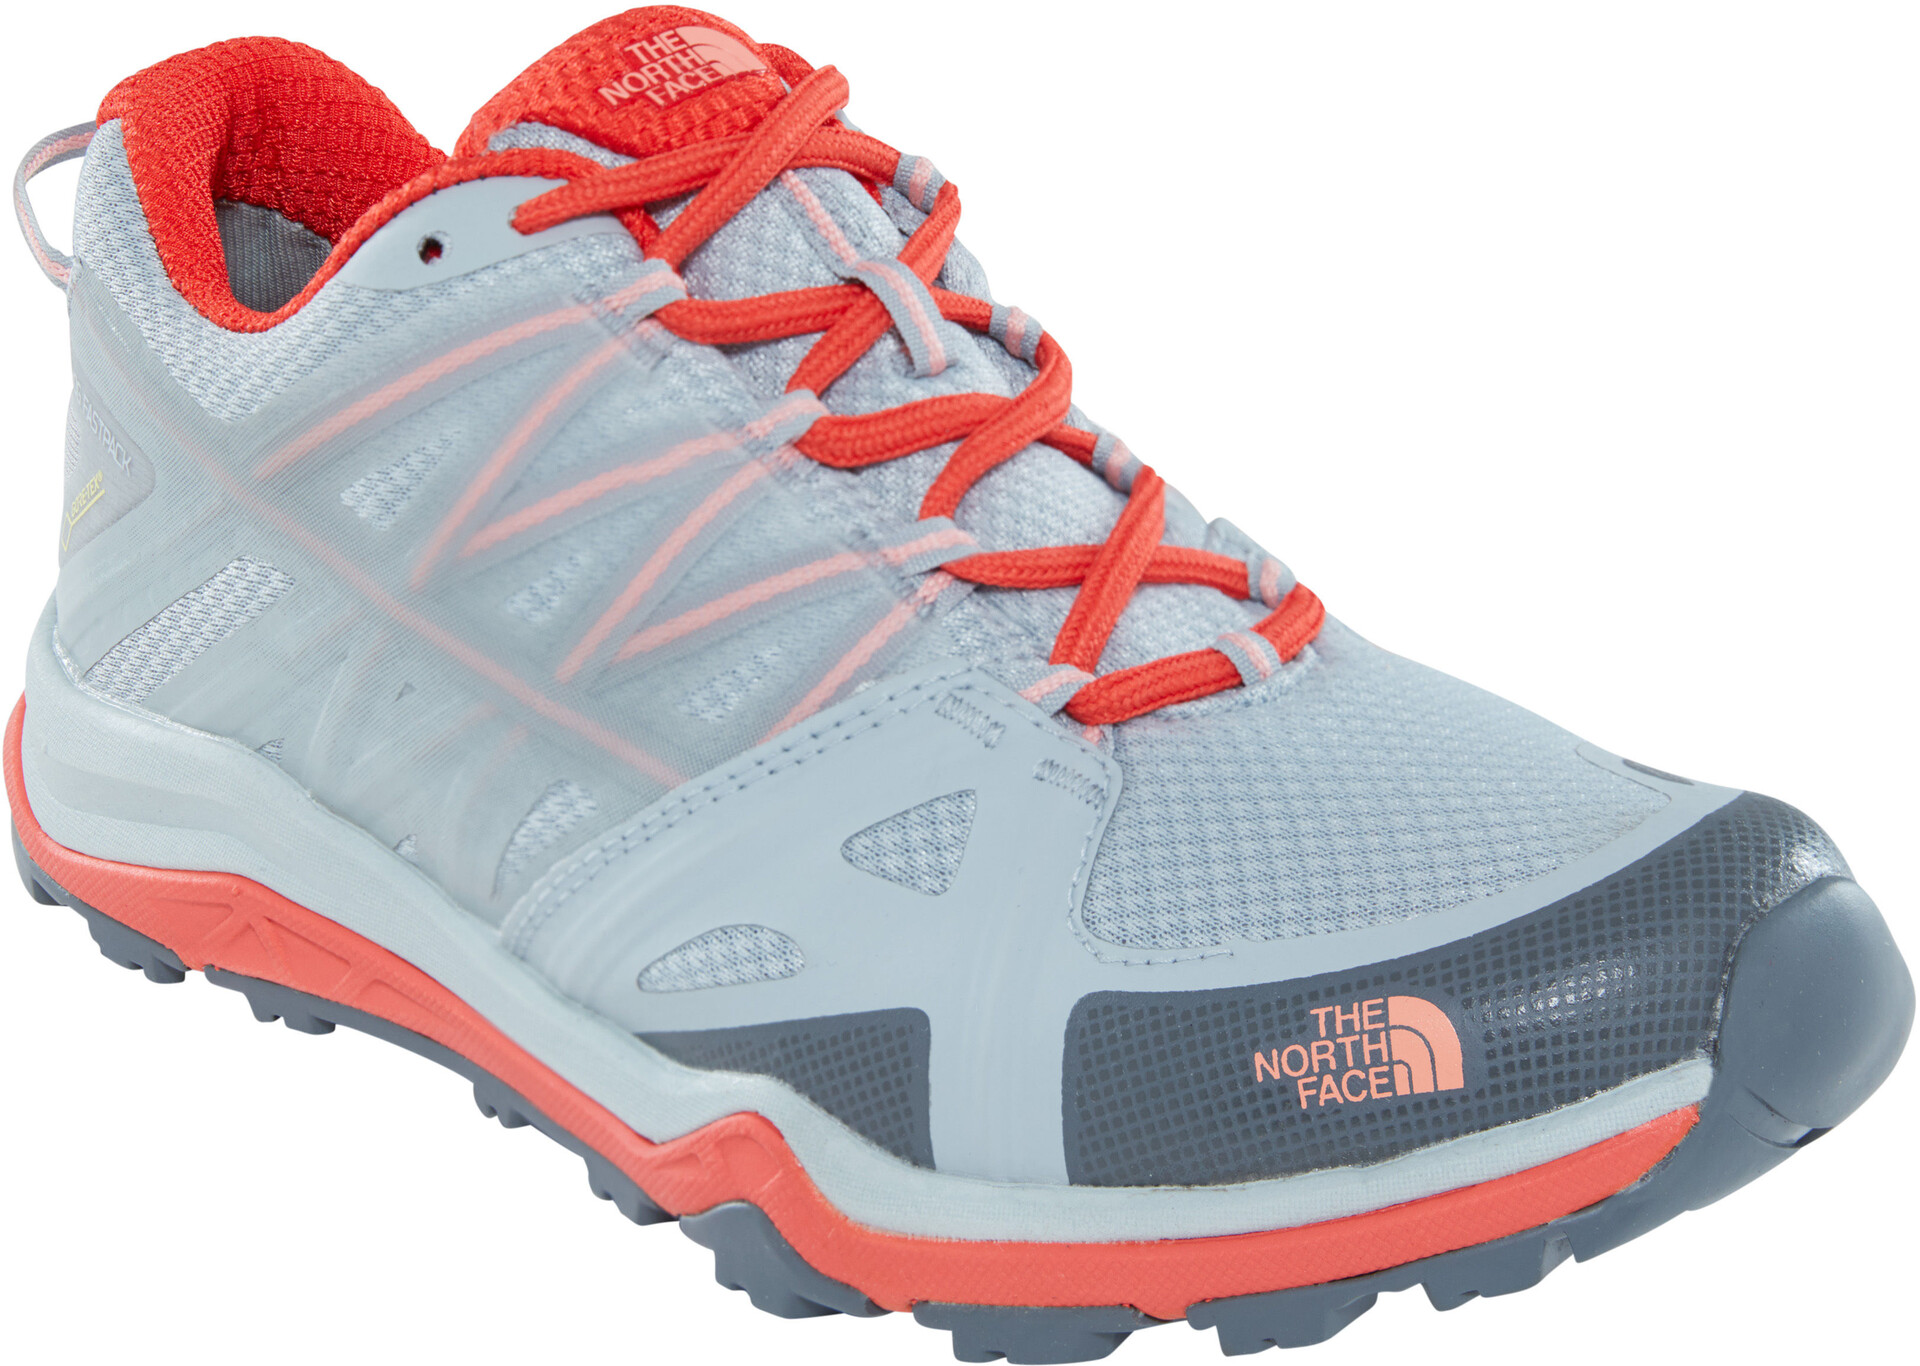 Greyfire Rise Red Hedgehog North Lite Brick Zapatillas The Fastpack MujerHigh Face Ii Gtx 3AScR54jLq